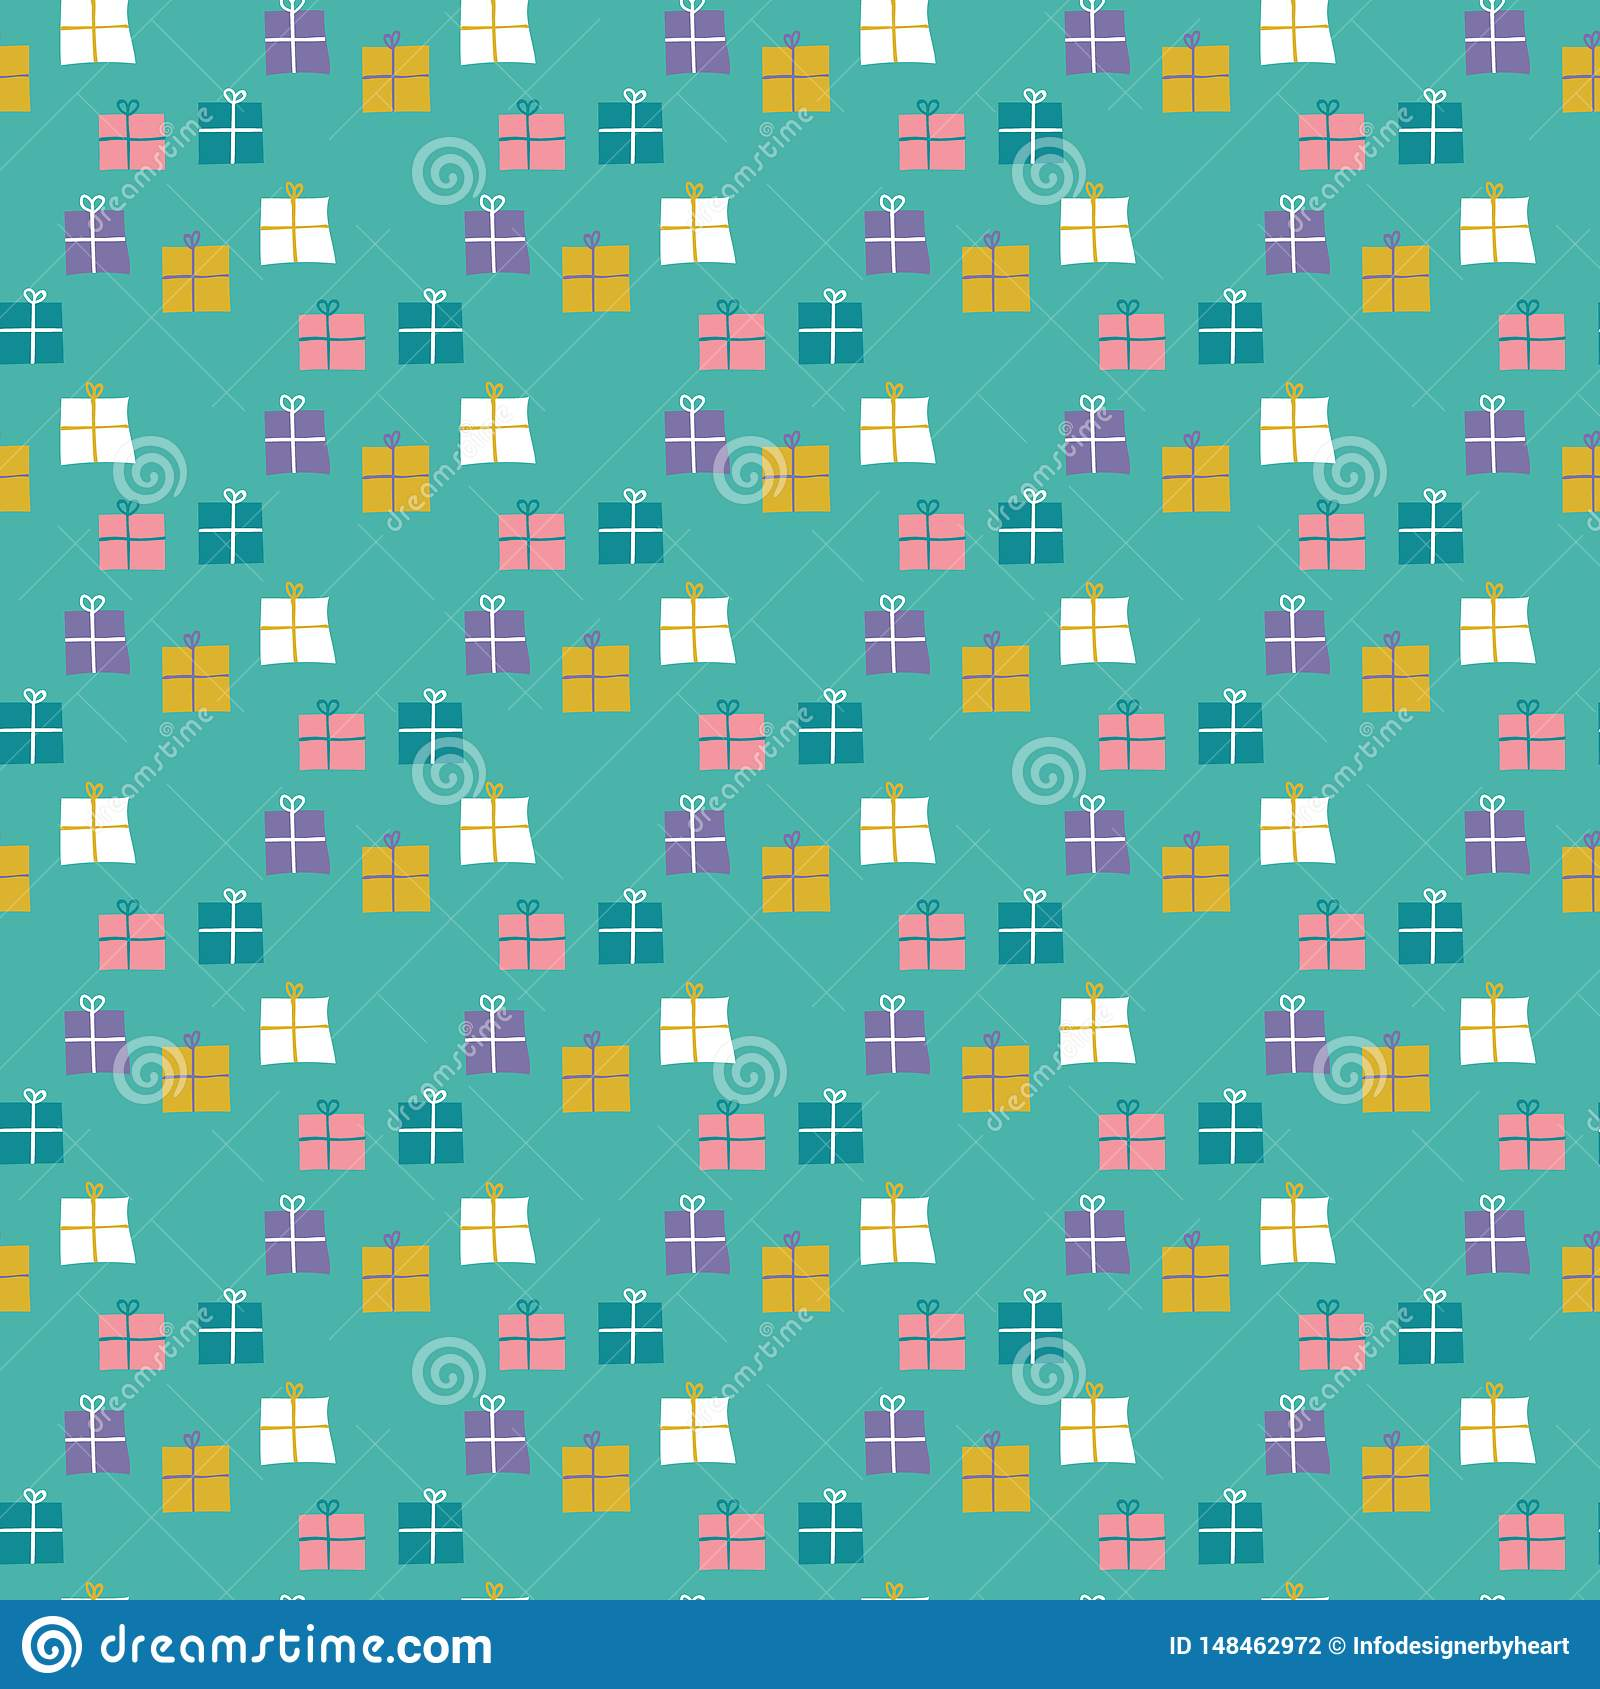 Seamless pattern of wrapped gifts on a mint green background.